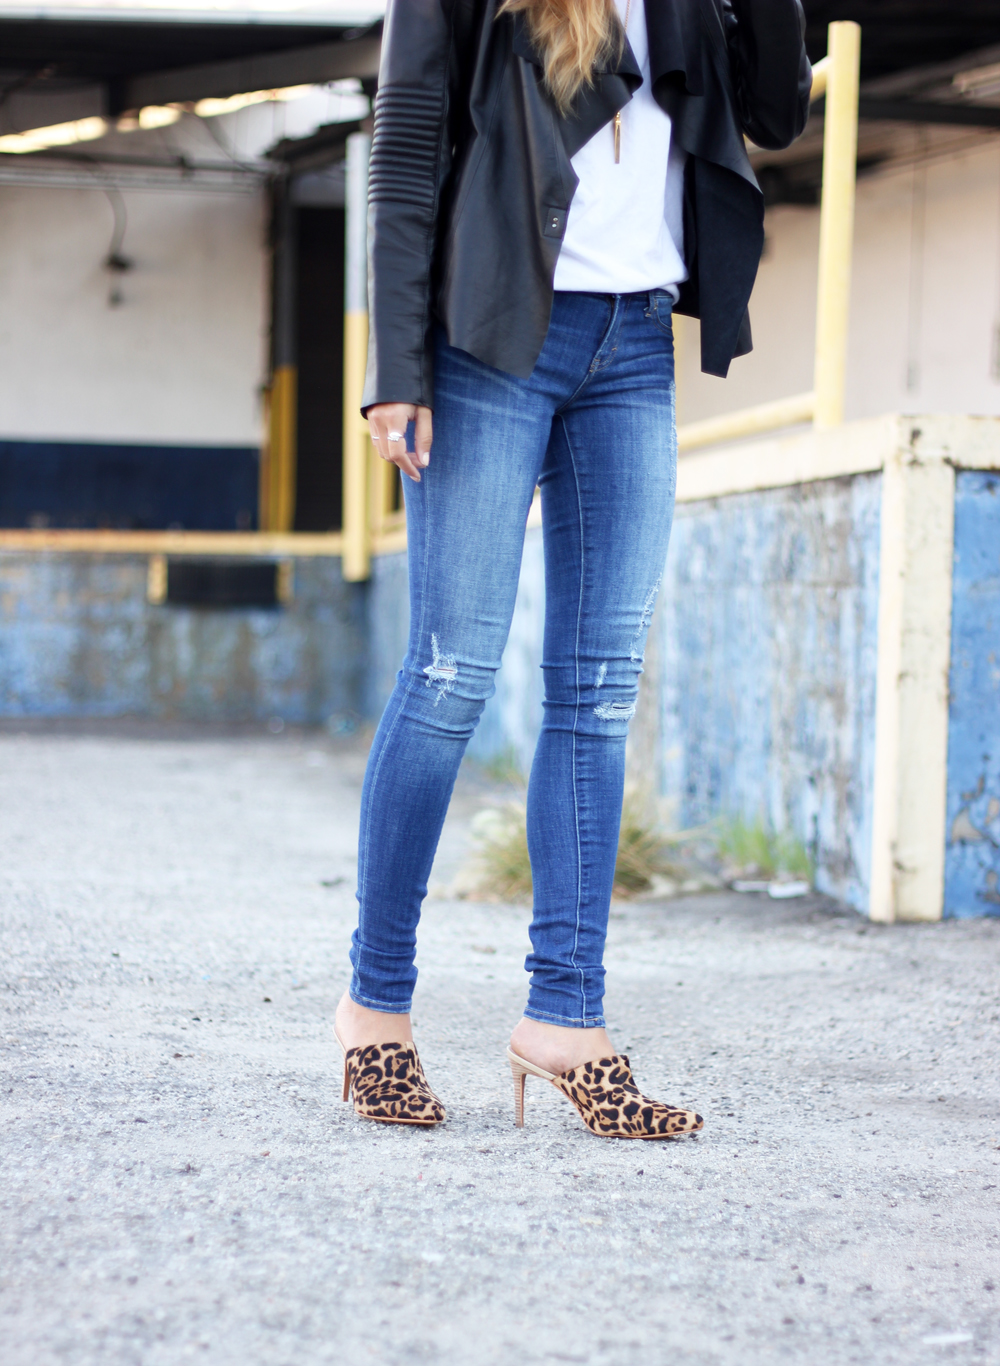 stella and jamie, leather jacket, marais usa, leopard, mules, melrodstyle, la blogger, stylelist, who what wear,  street style, ootd, mexican blogger, latina